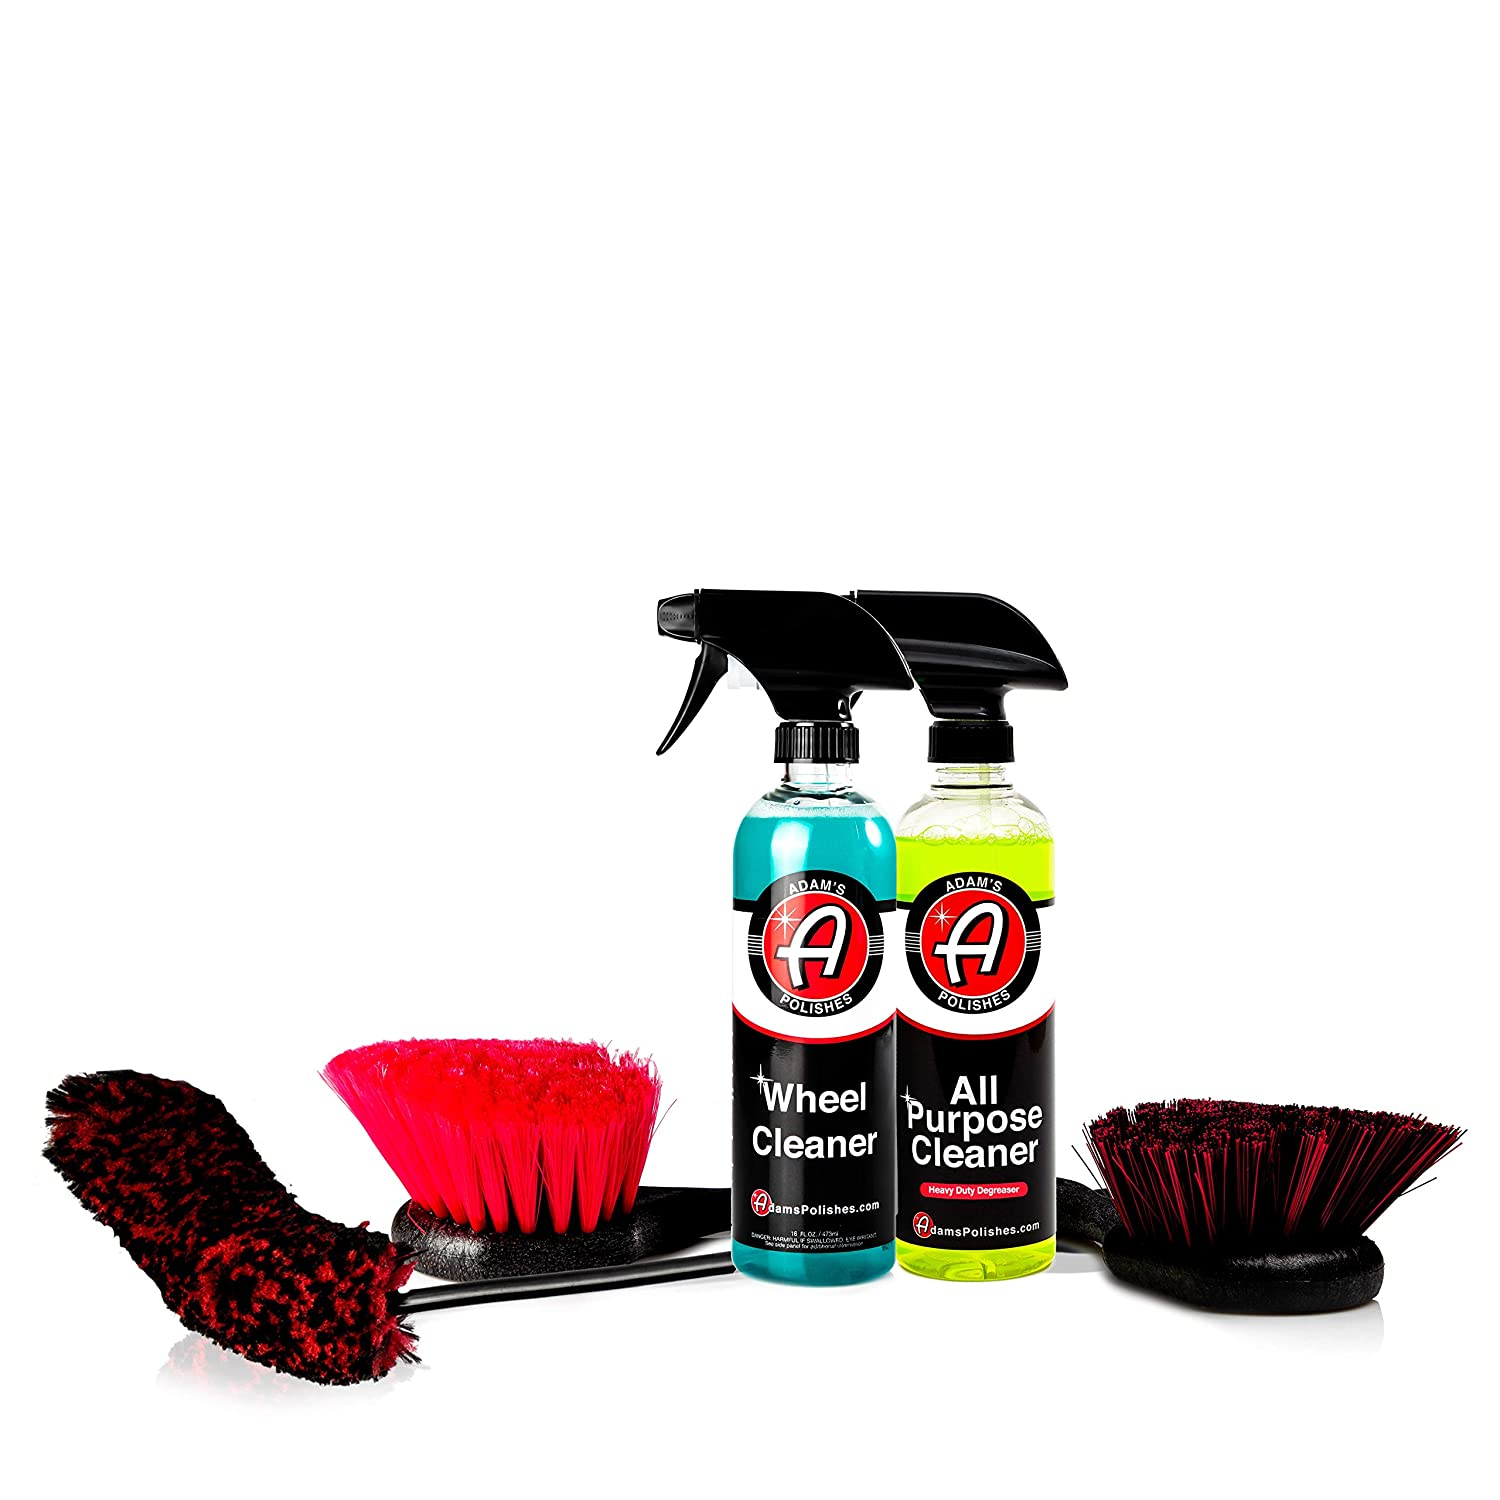 Amazon.com: Adams Complete Wheel & Tire Car Kit to Professionally Detail Your Wheels & Tires - Wheel & Tire Cleaner with All Brushes Needed (Ultimate Wheel ...